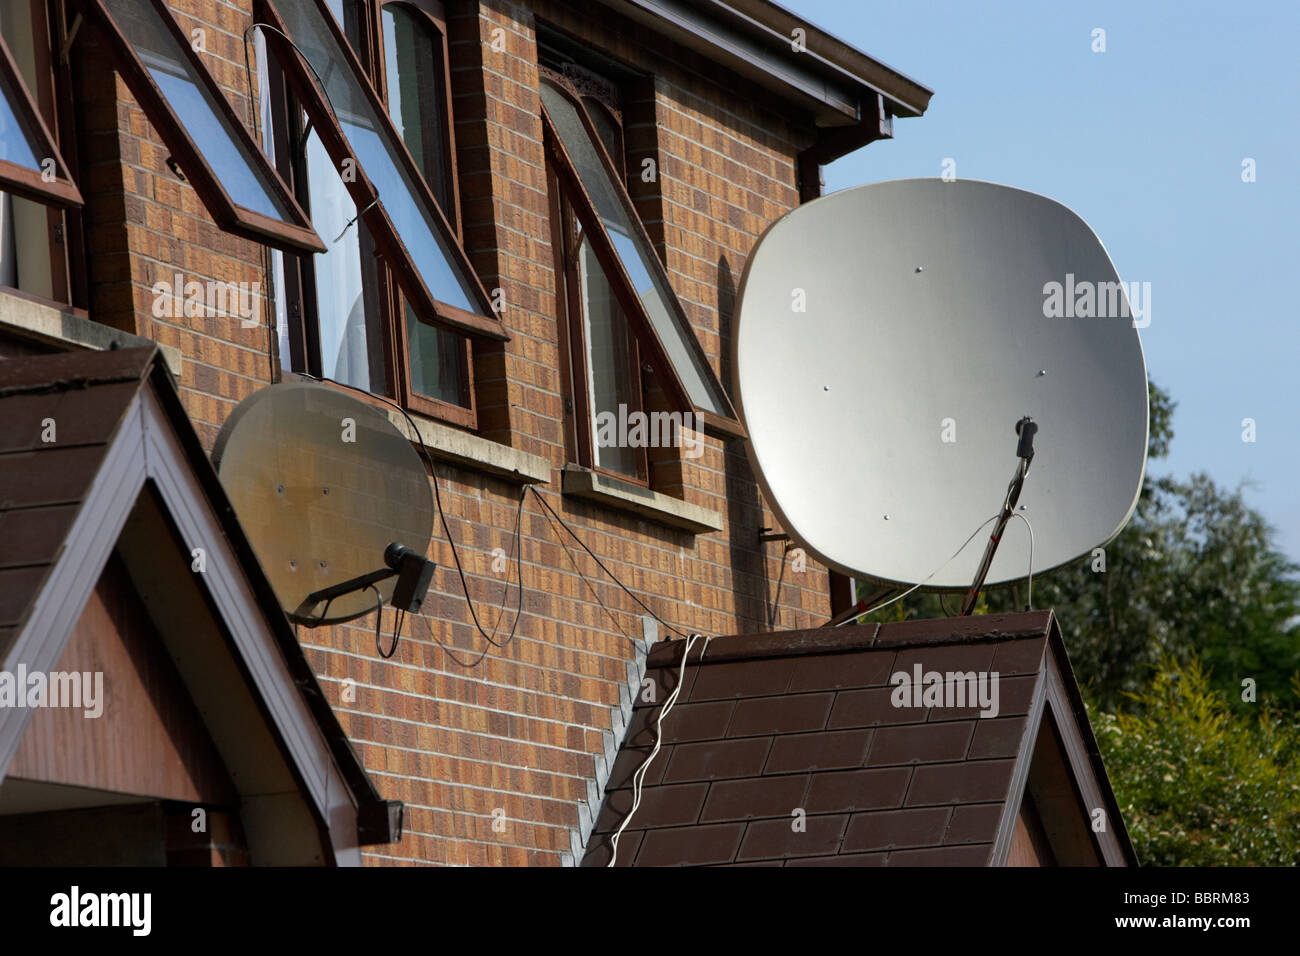 large satellite dishes attached to the outside of a row of houses in the uk - Stock Image